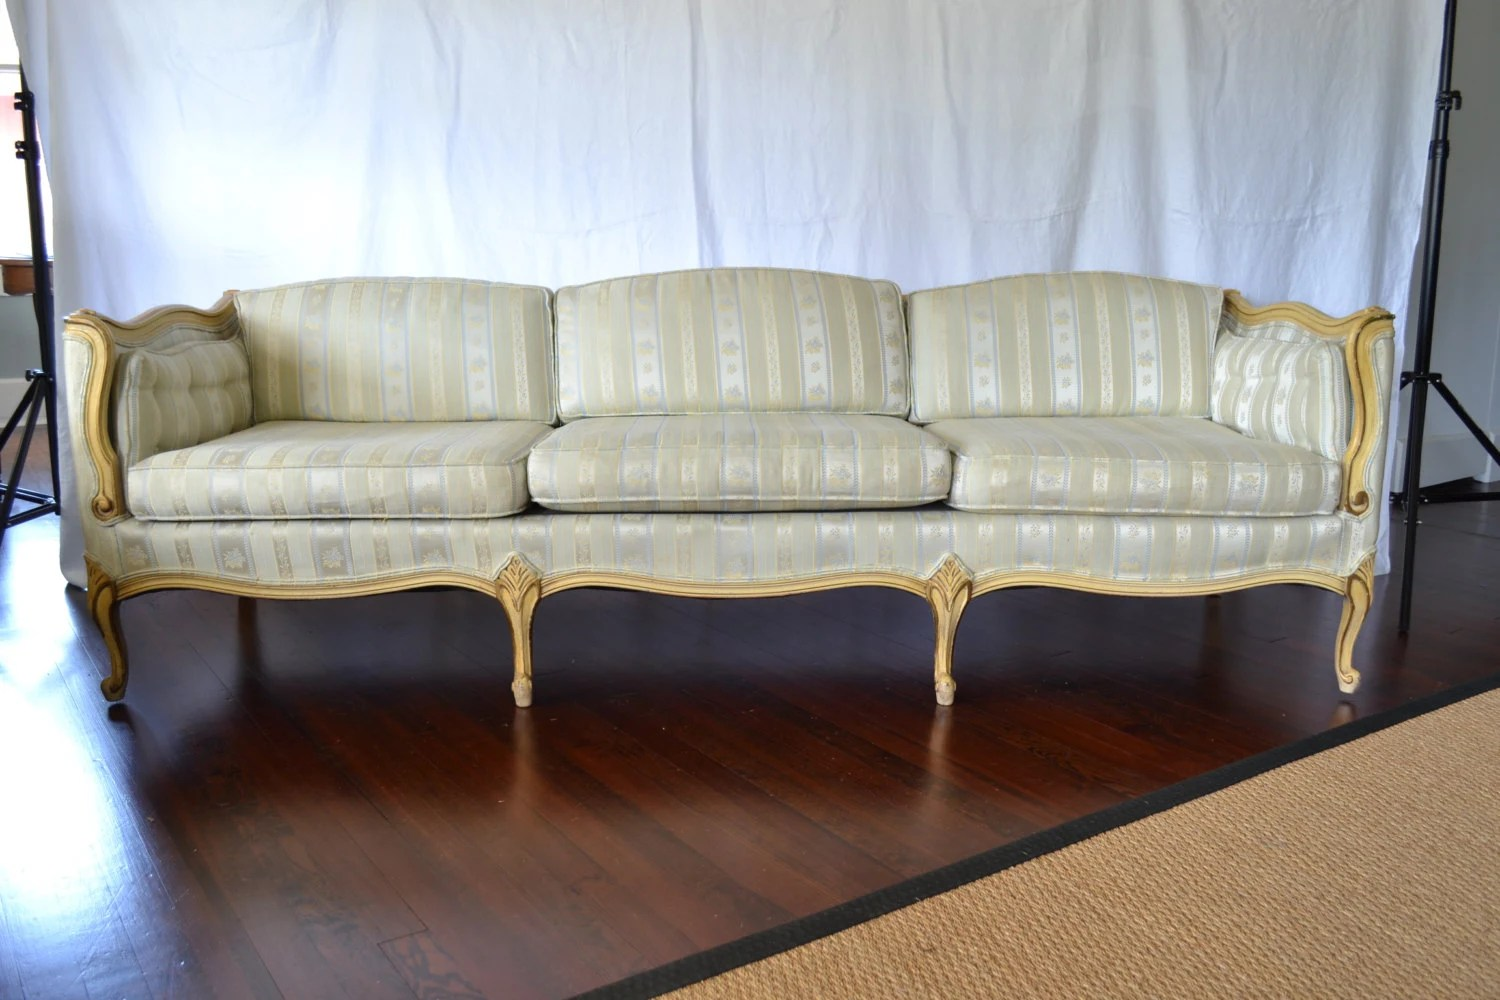 Vintage Couch Vintage French Provincial Sofa